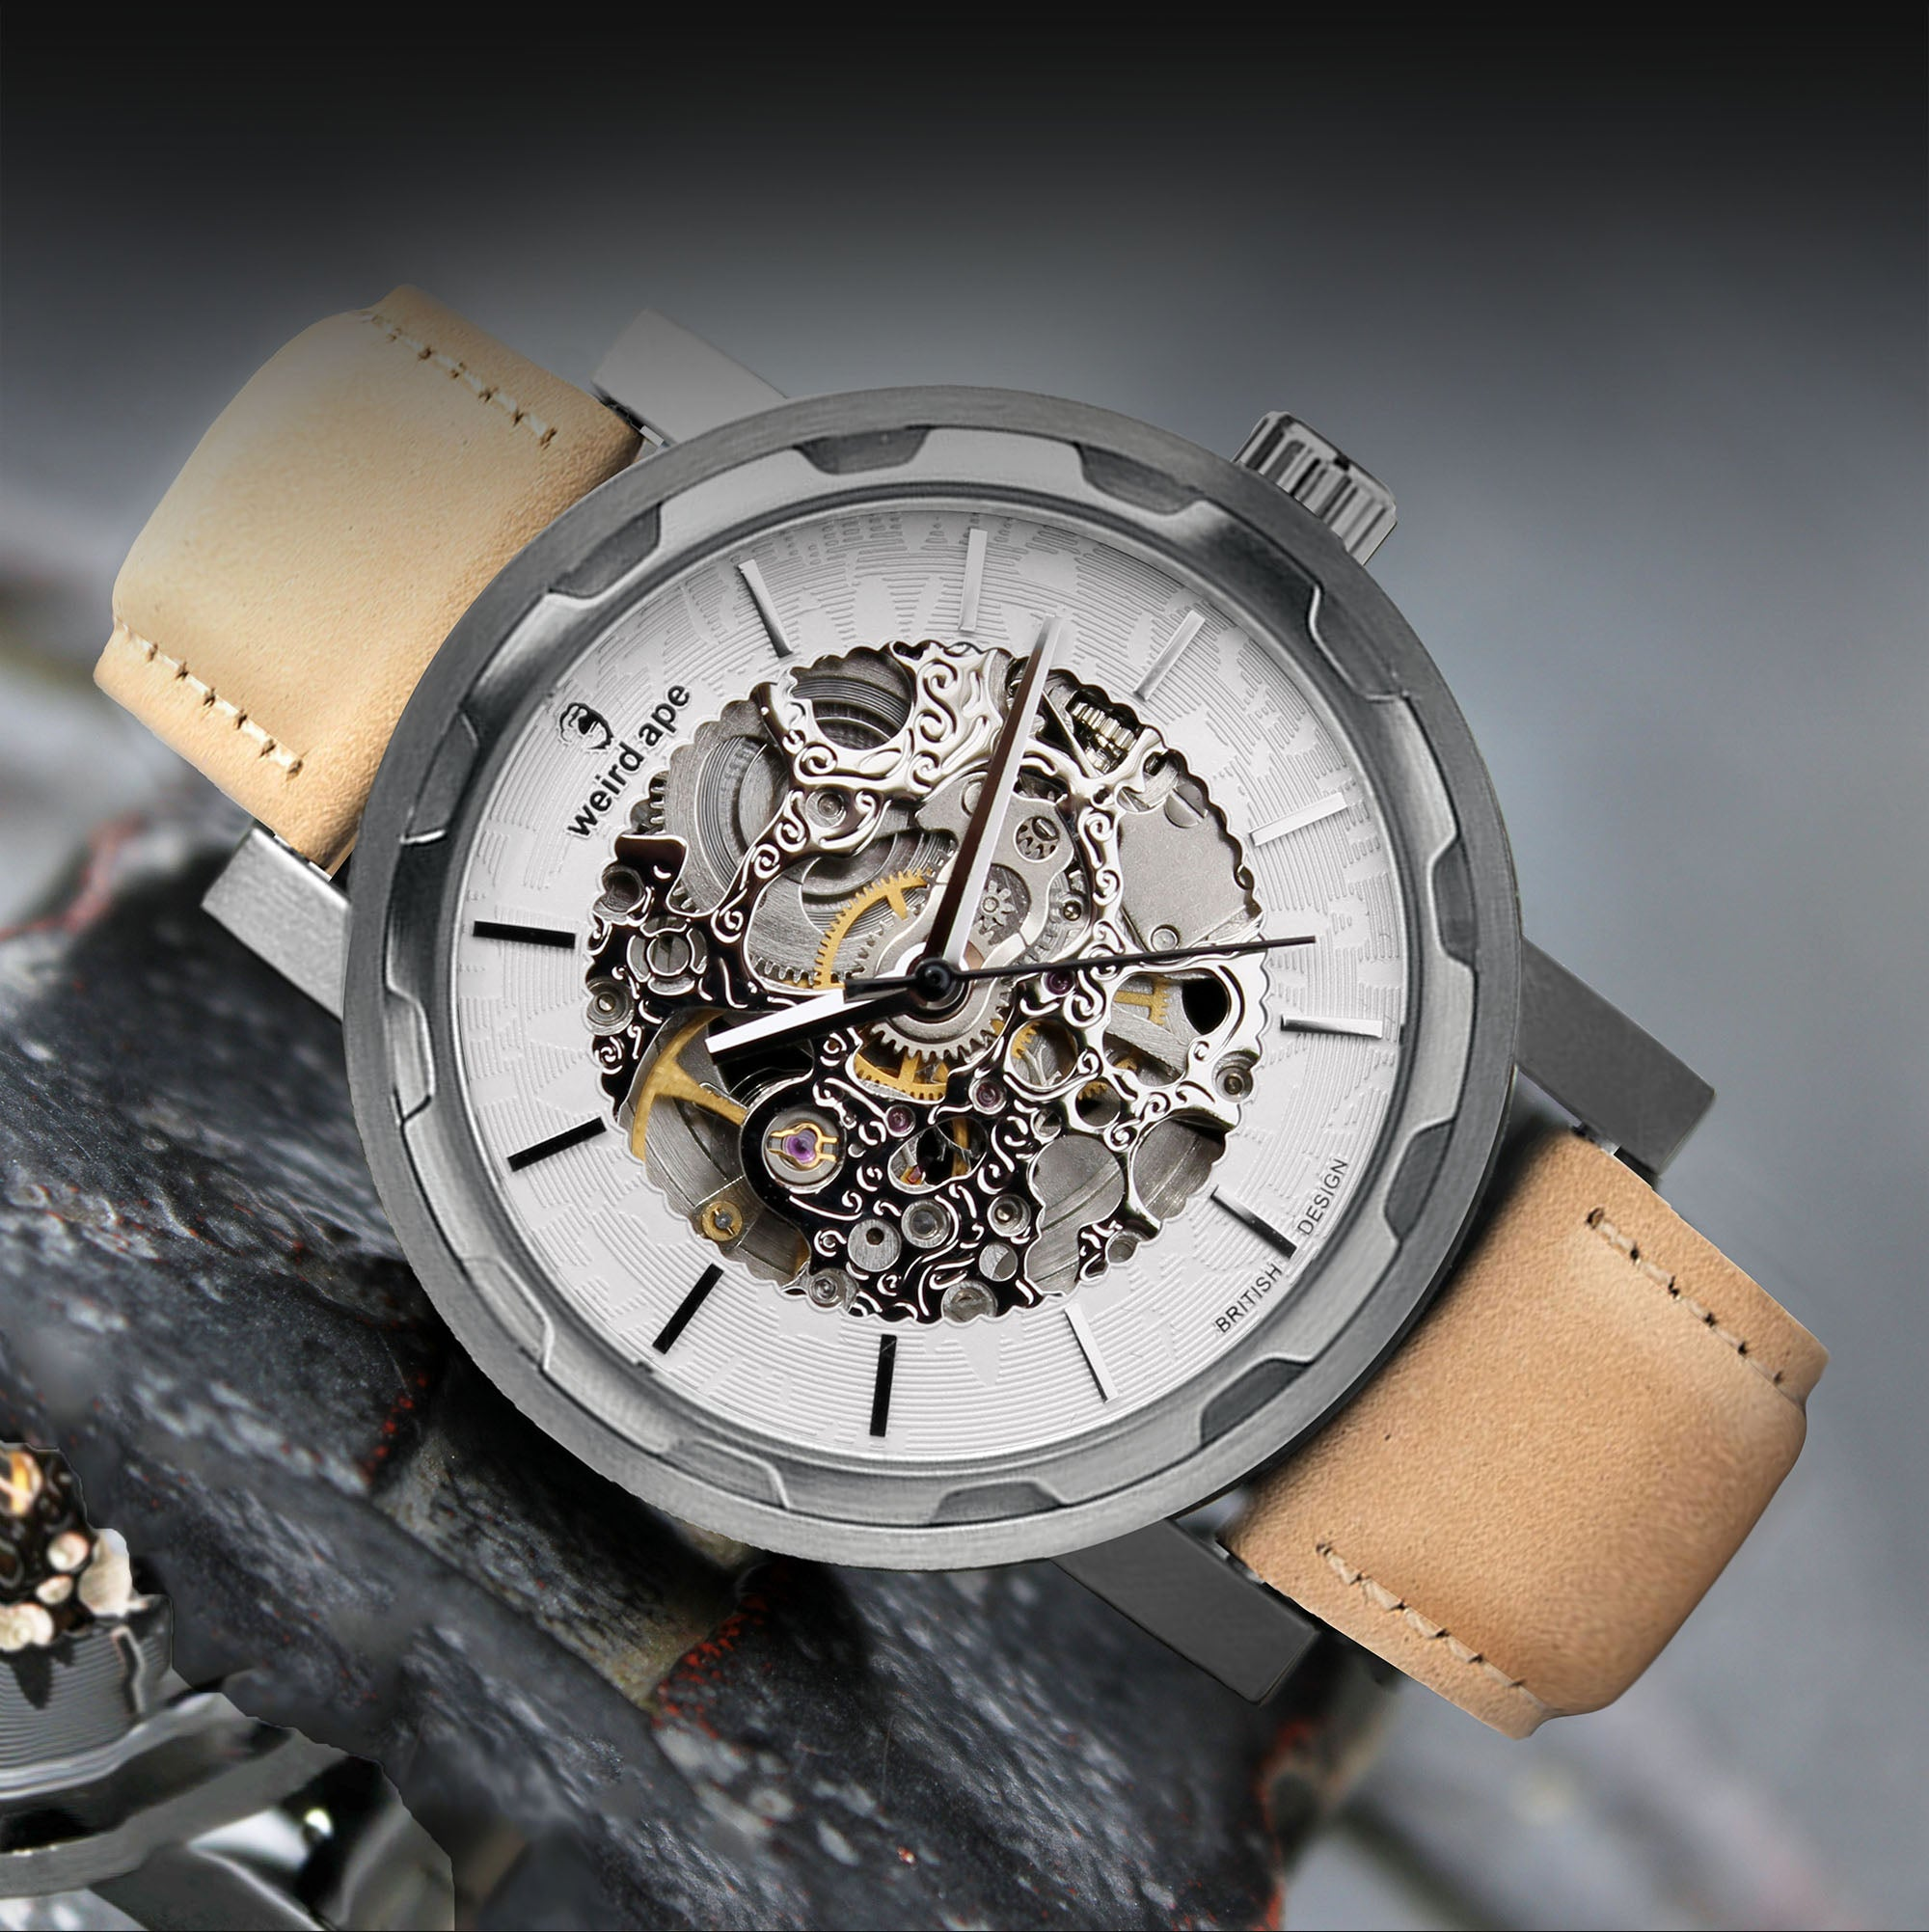 A picture of a silver mechanical watch with a suede leather sandstone strap.